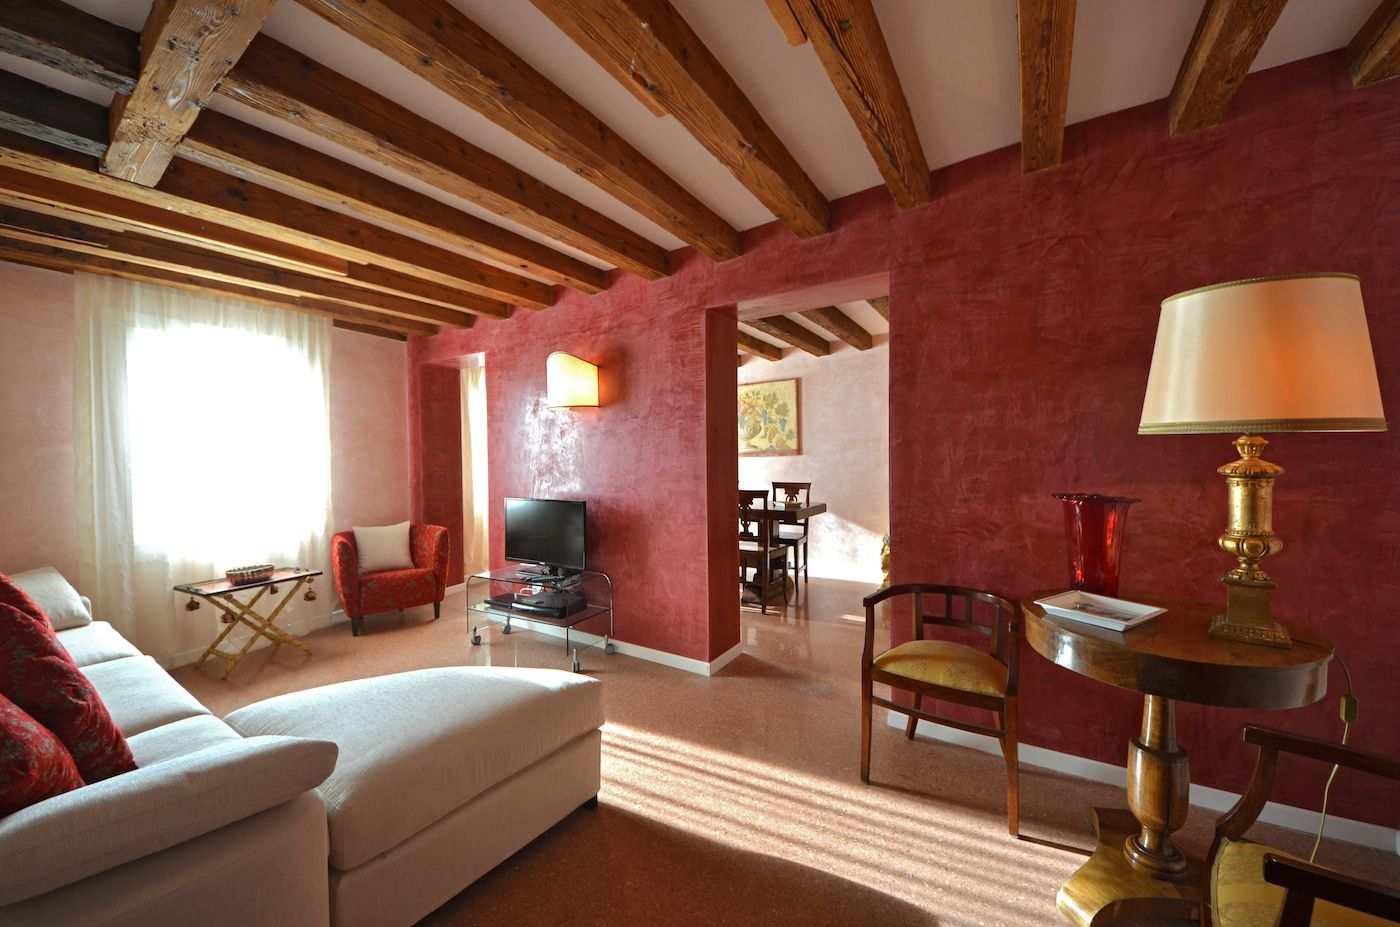 sunny living room facing Fondamenta delle Zattere and the Giudecca Canal